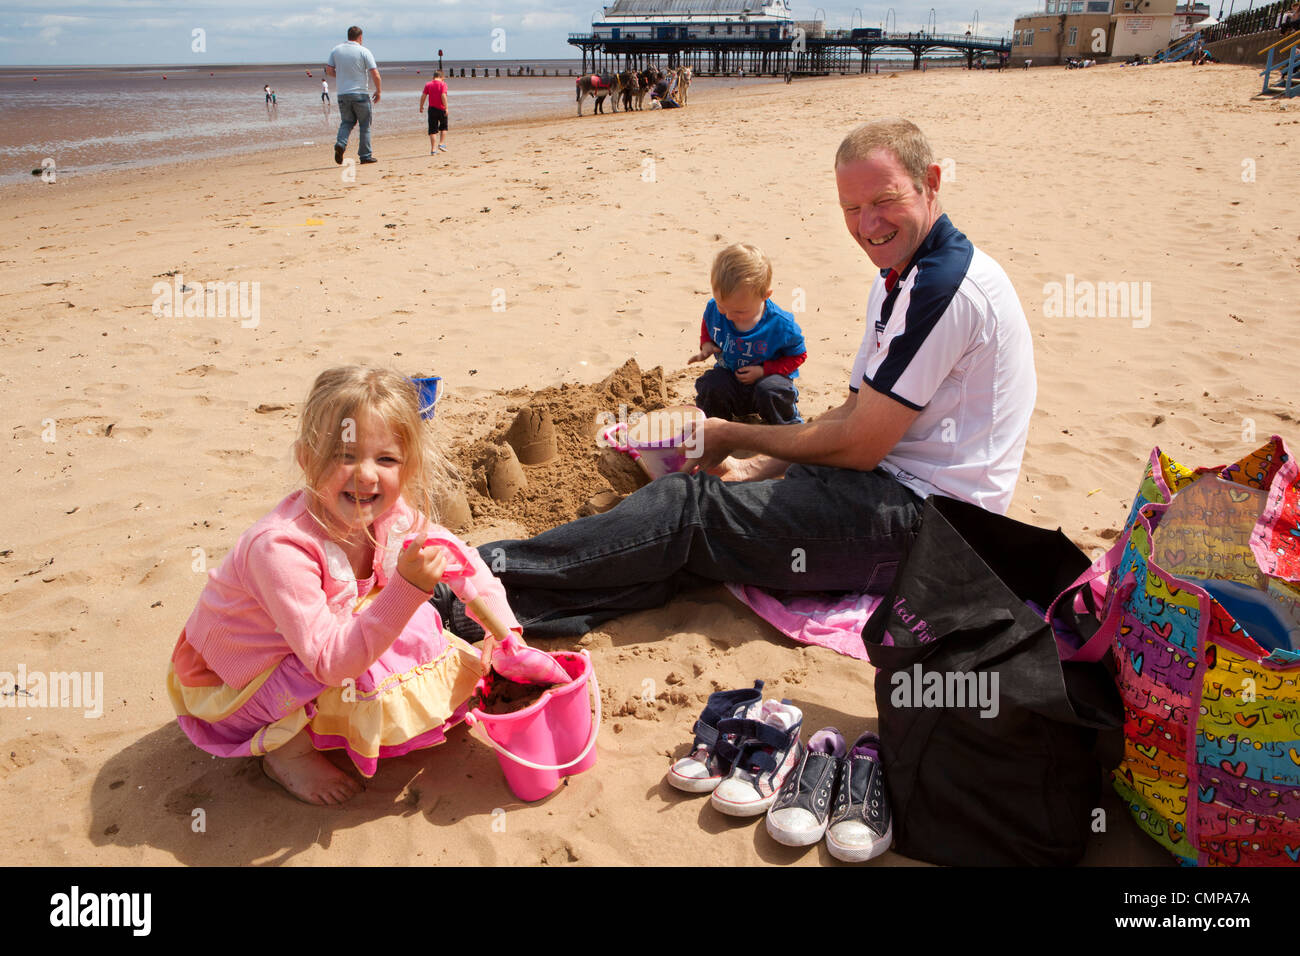 UK, England, Lincolnshire, Cleethorpes, family making sandcastles on beach in sunshine beside the pier - Stock Image